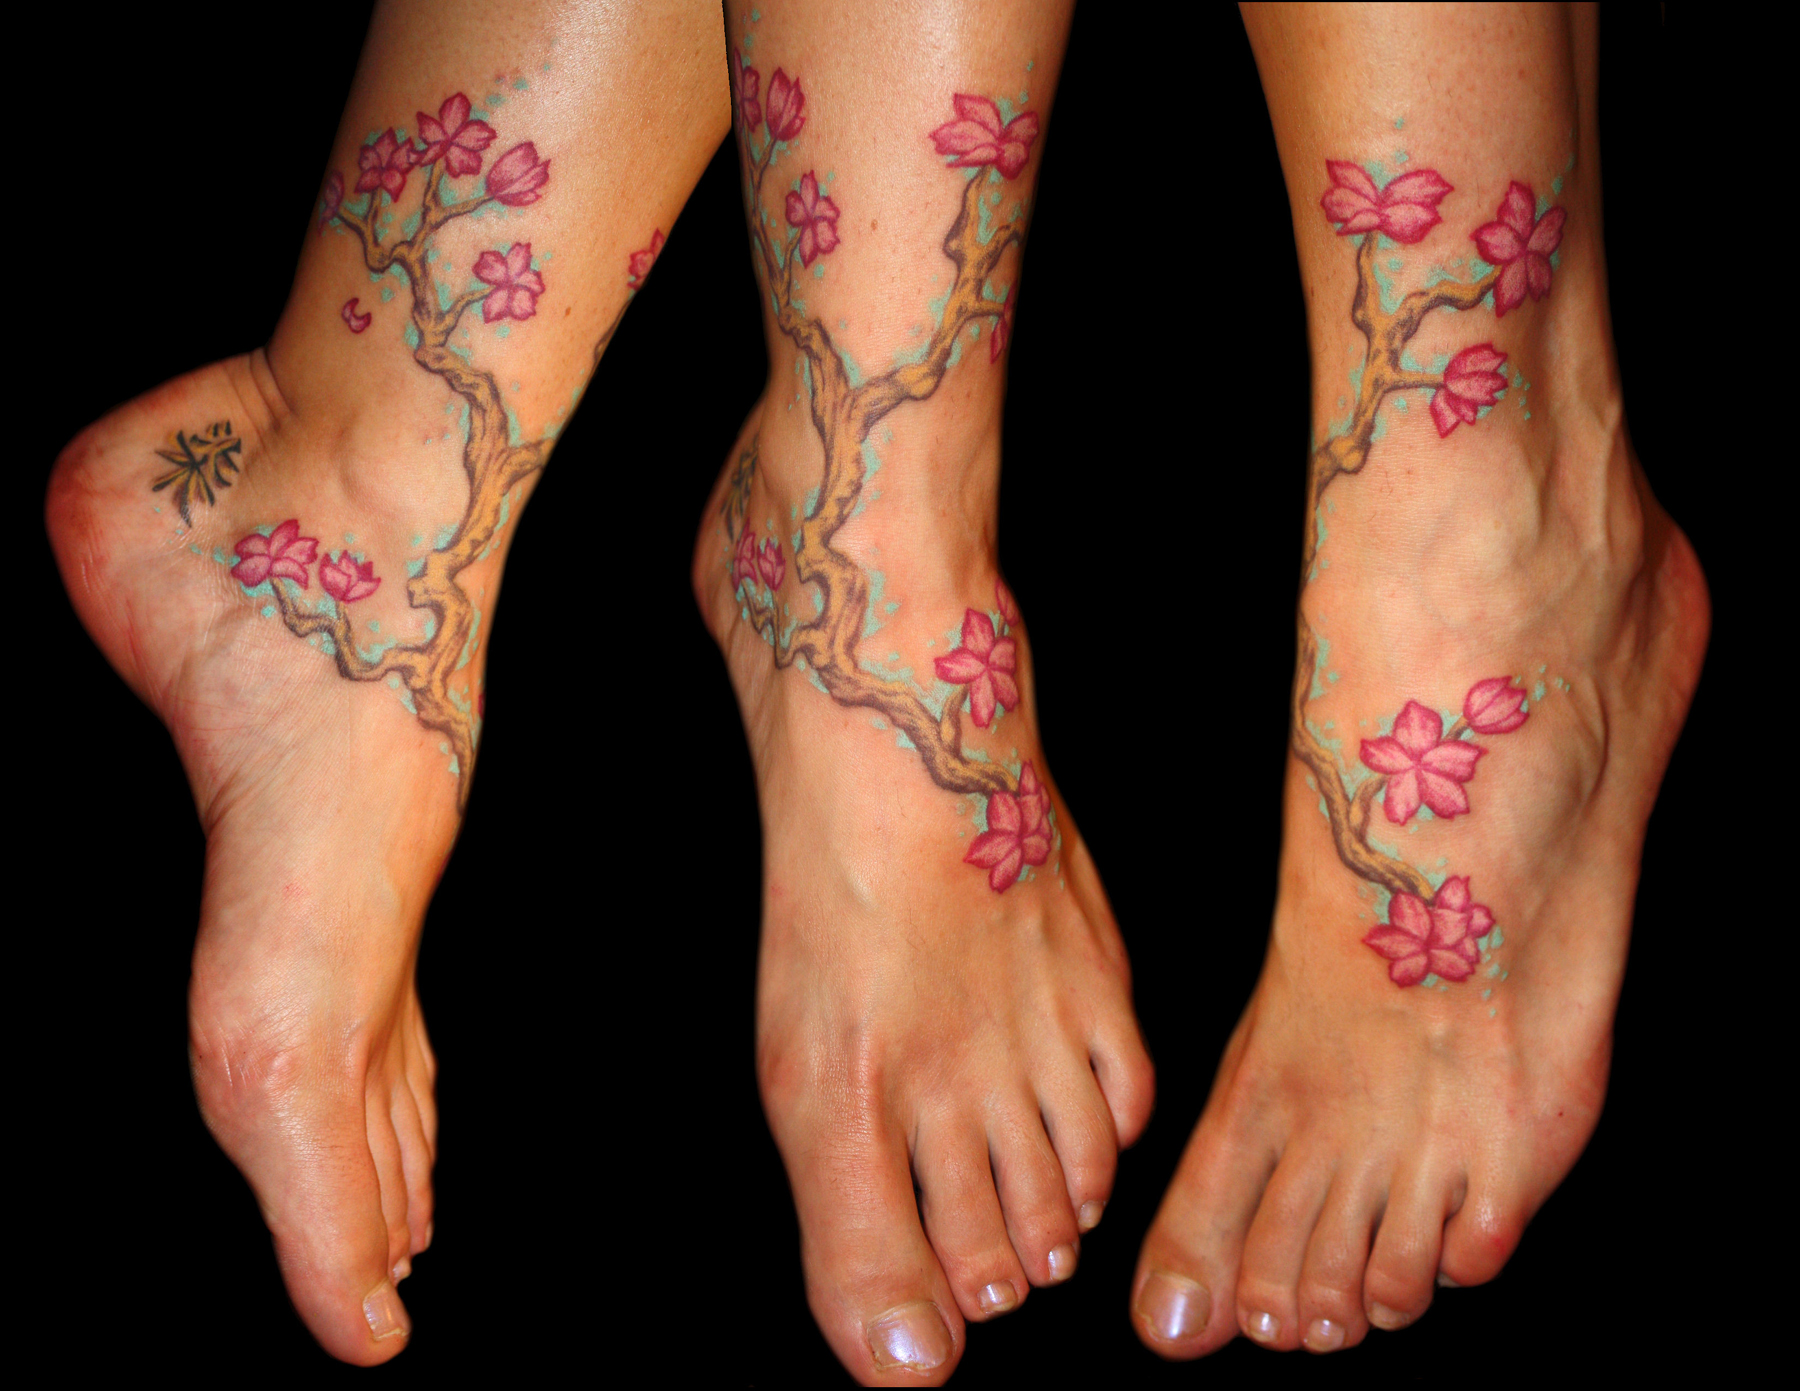 Cherry Blossom Tattoo Leg Baxter's tattoo blog